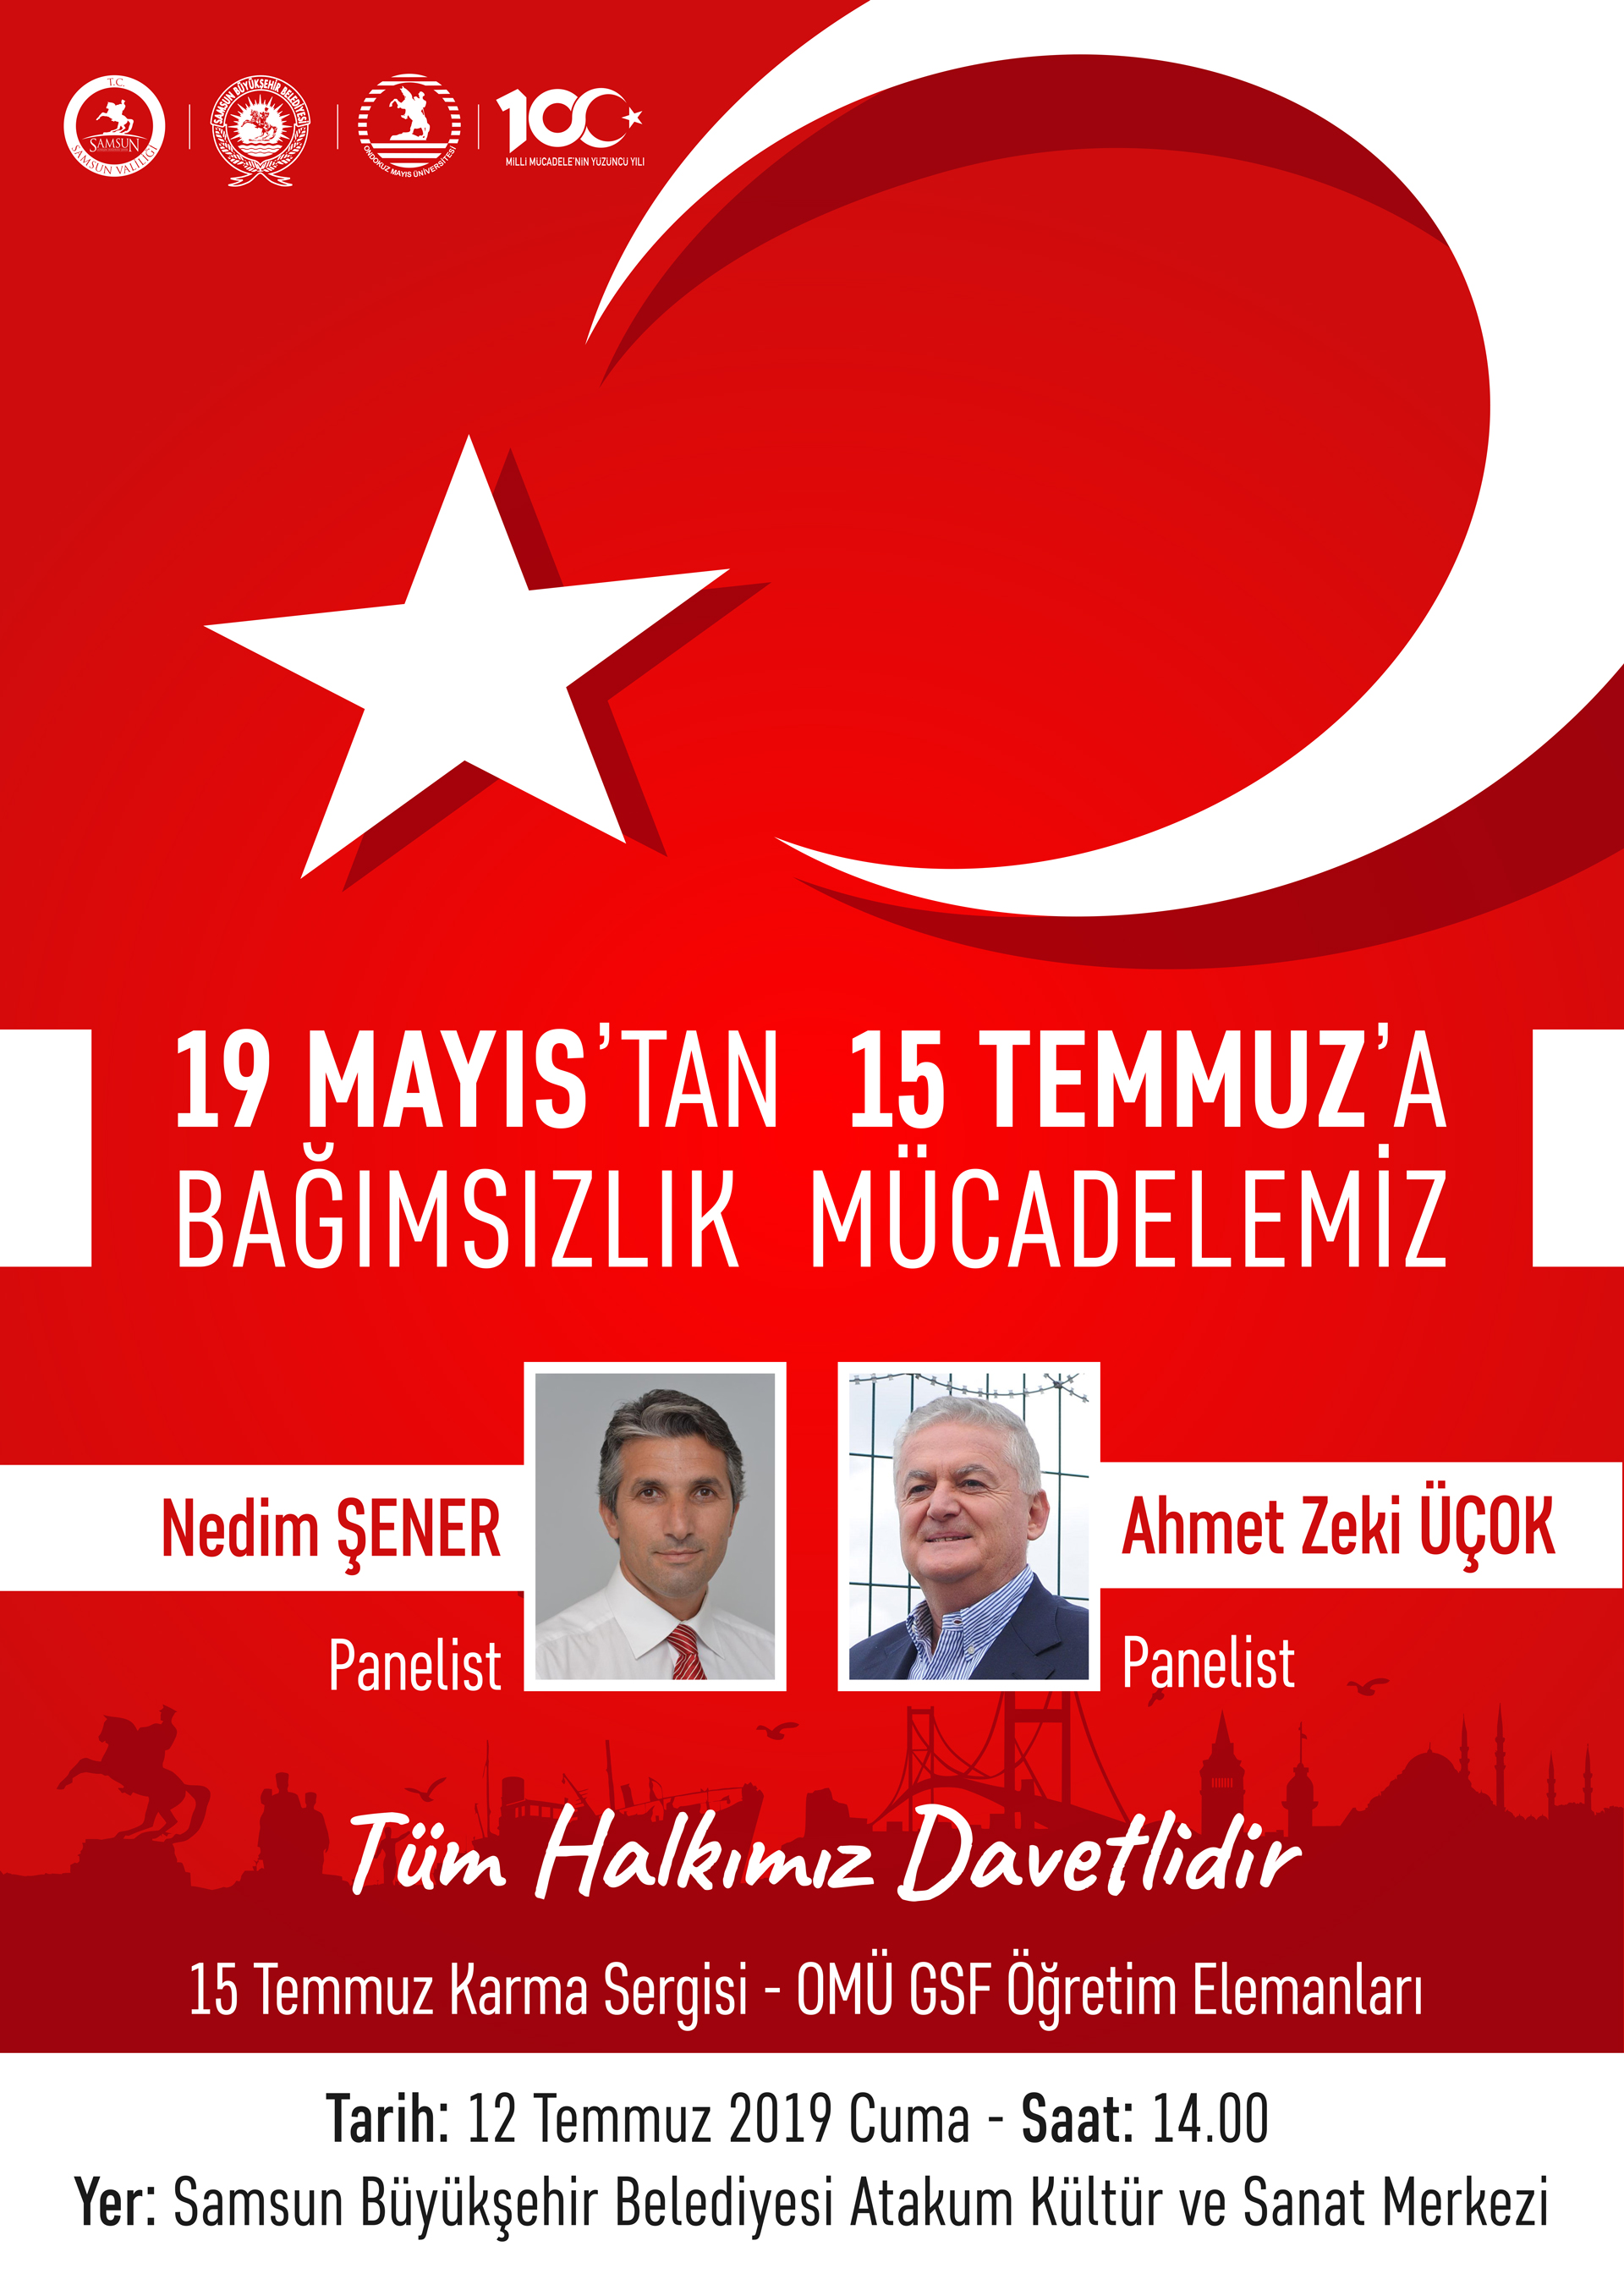 http://www.omu.edu.tr/sites/default/files/15-temmuz_19mayistan15temmuza.jpg